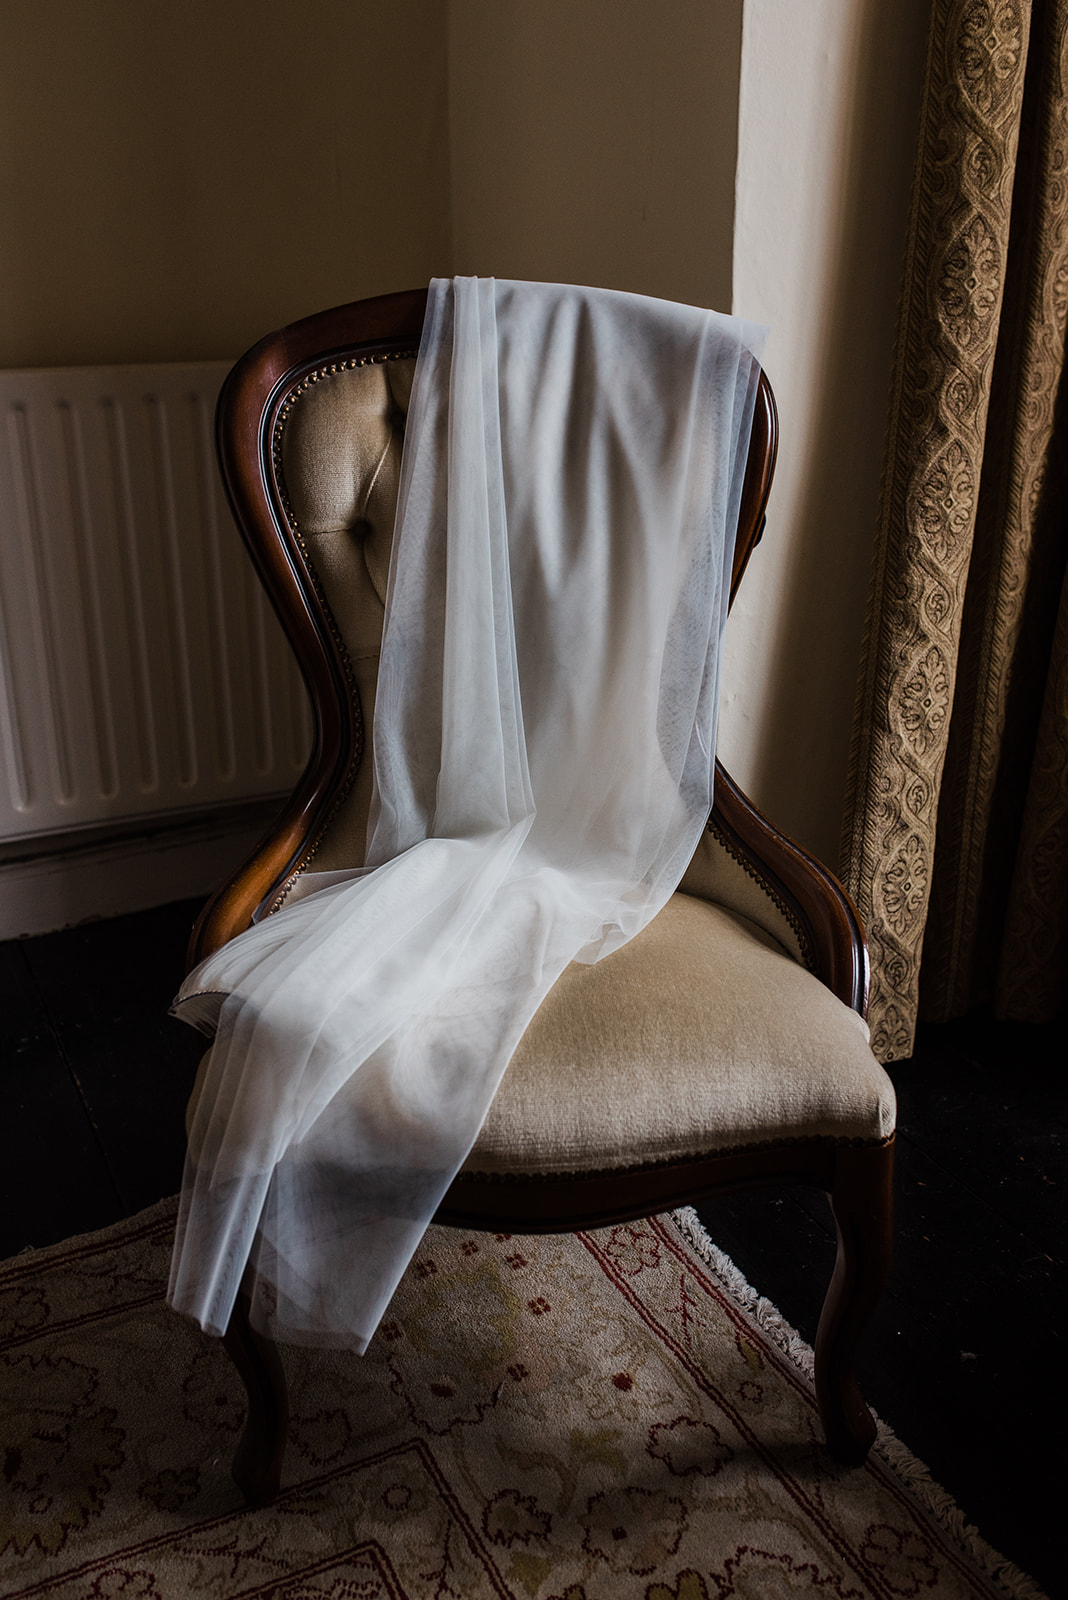 Wedding veil lying on chair